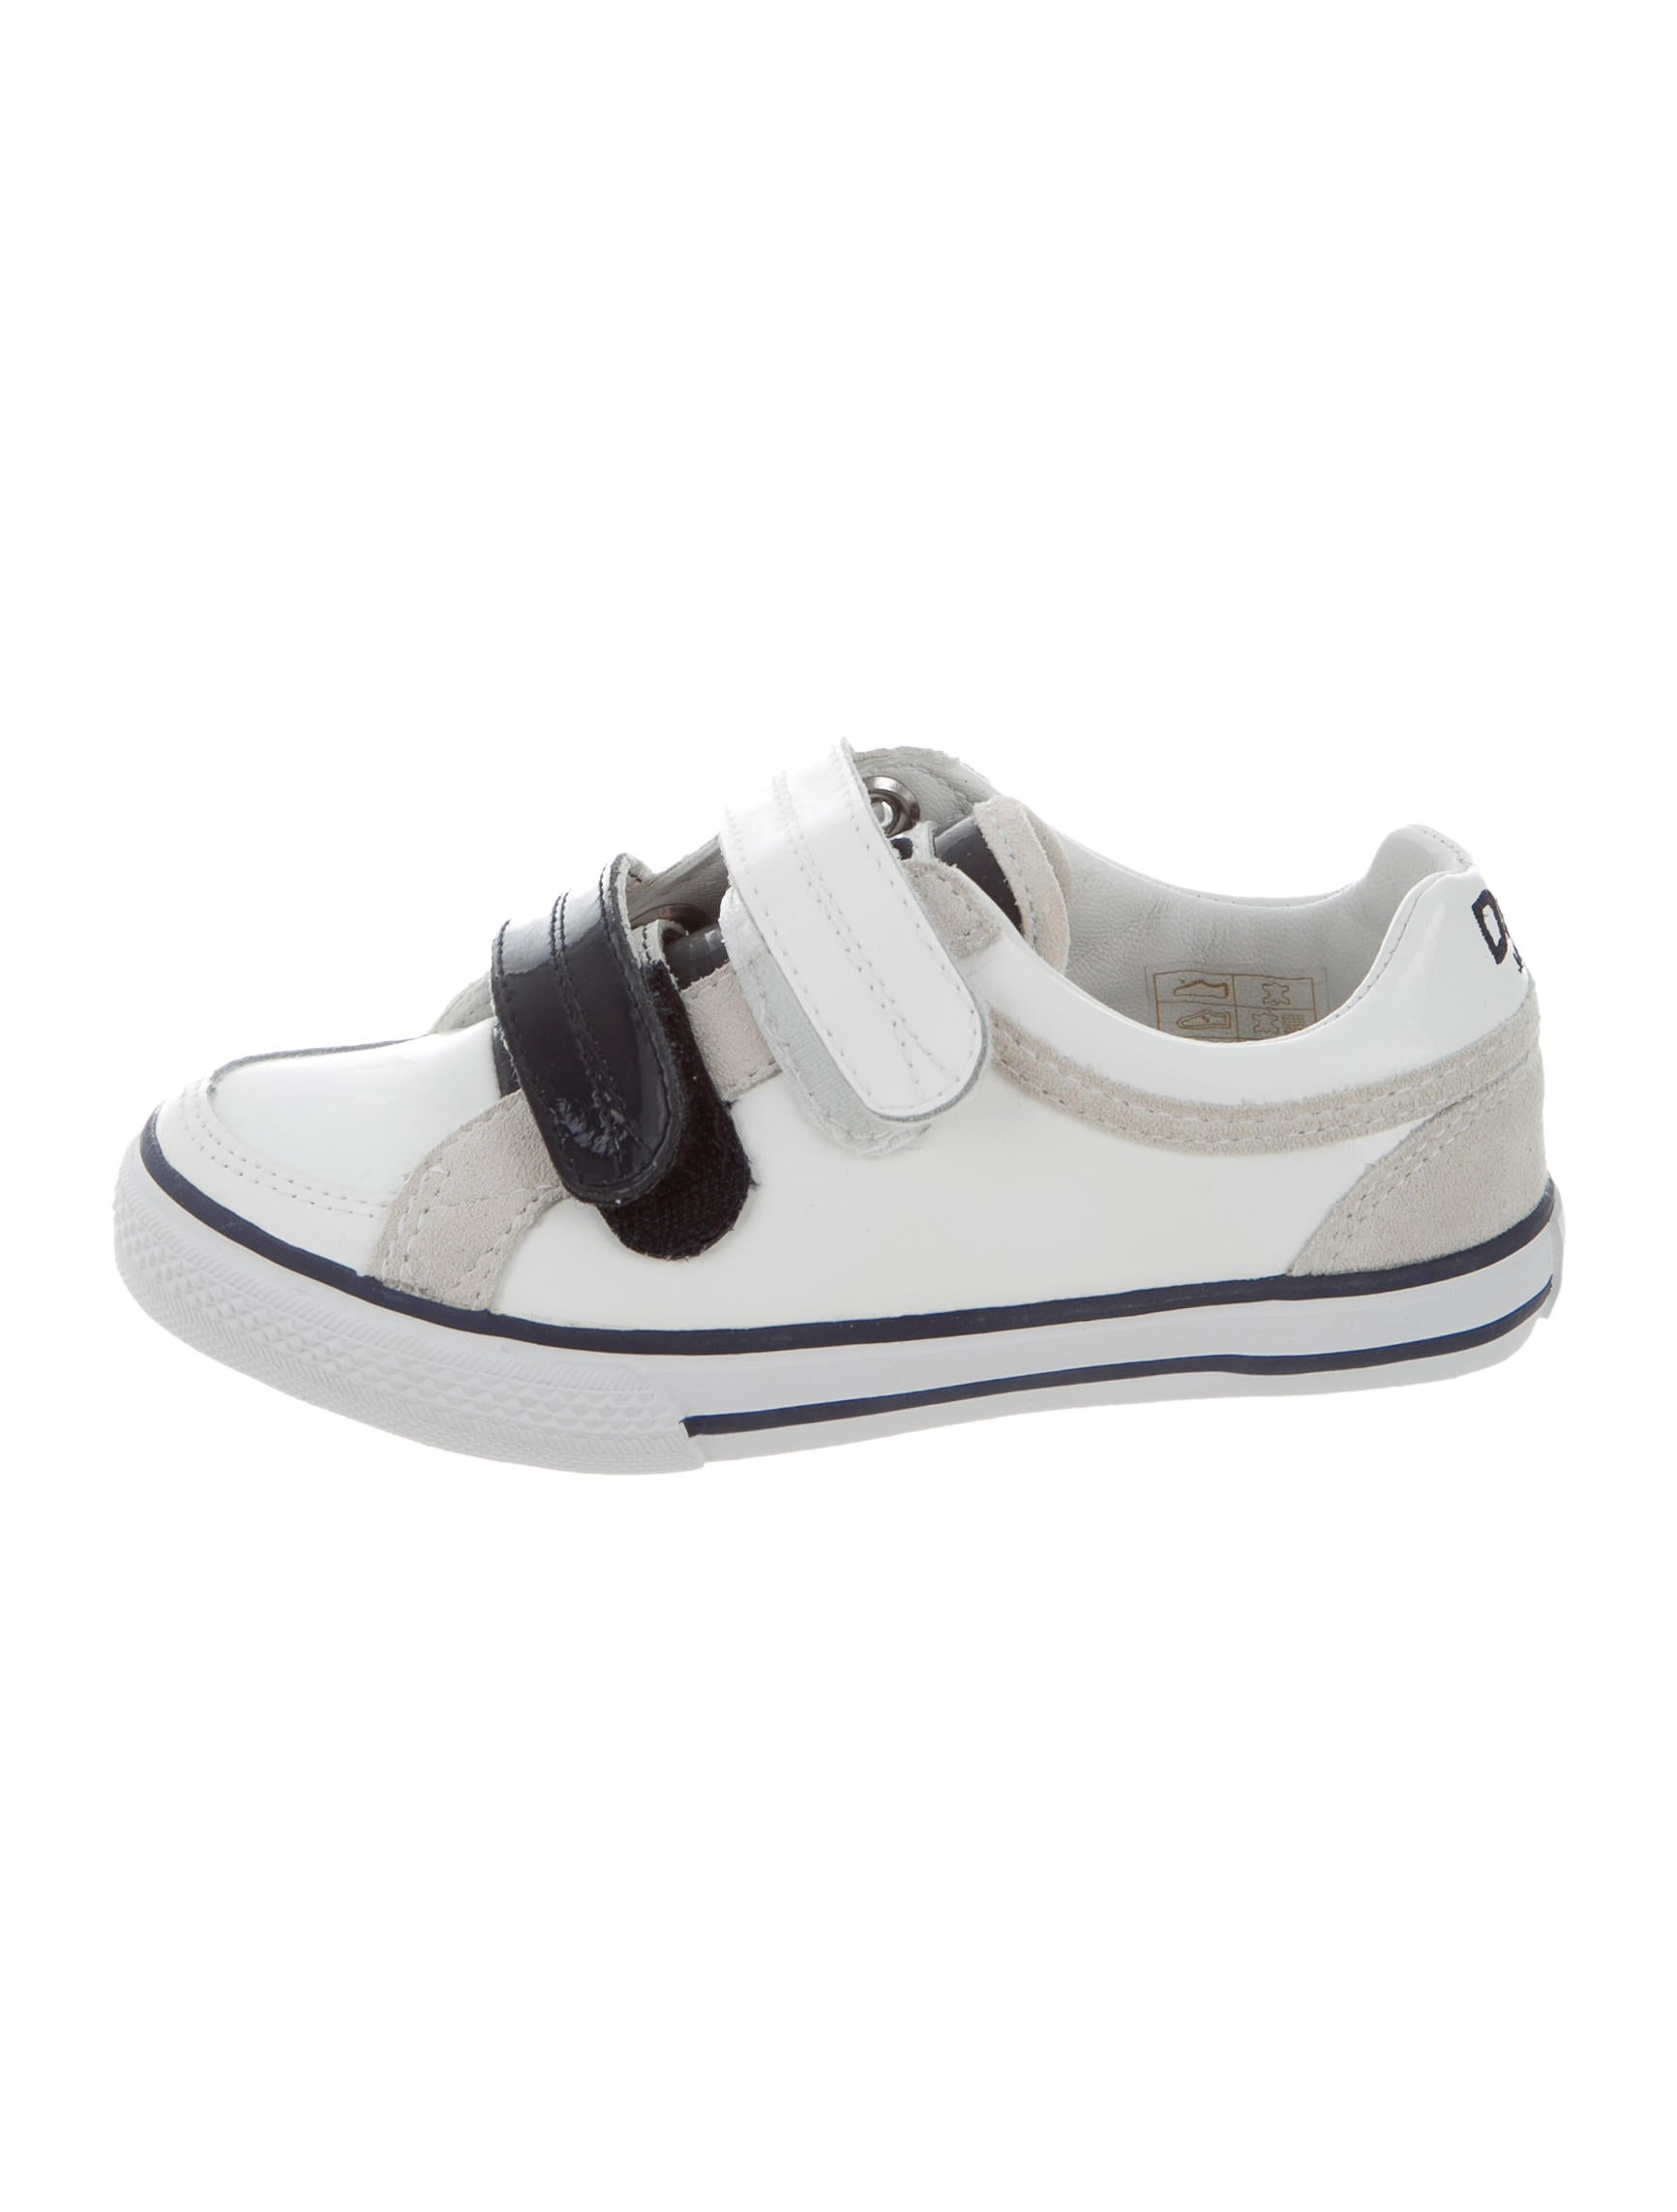 d g boys suede trimmed coated leather shoes boys